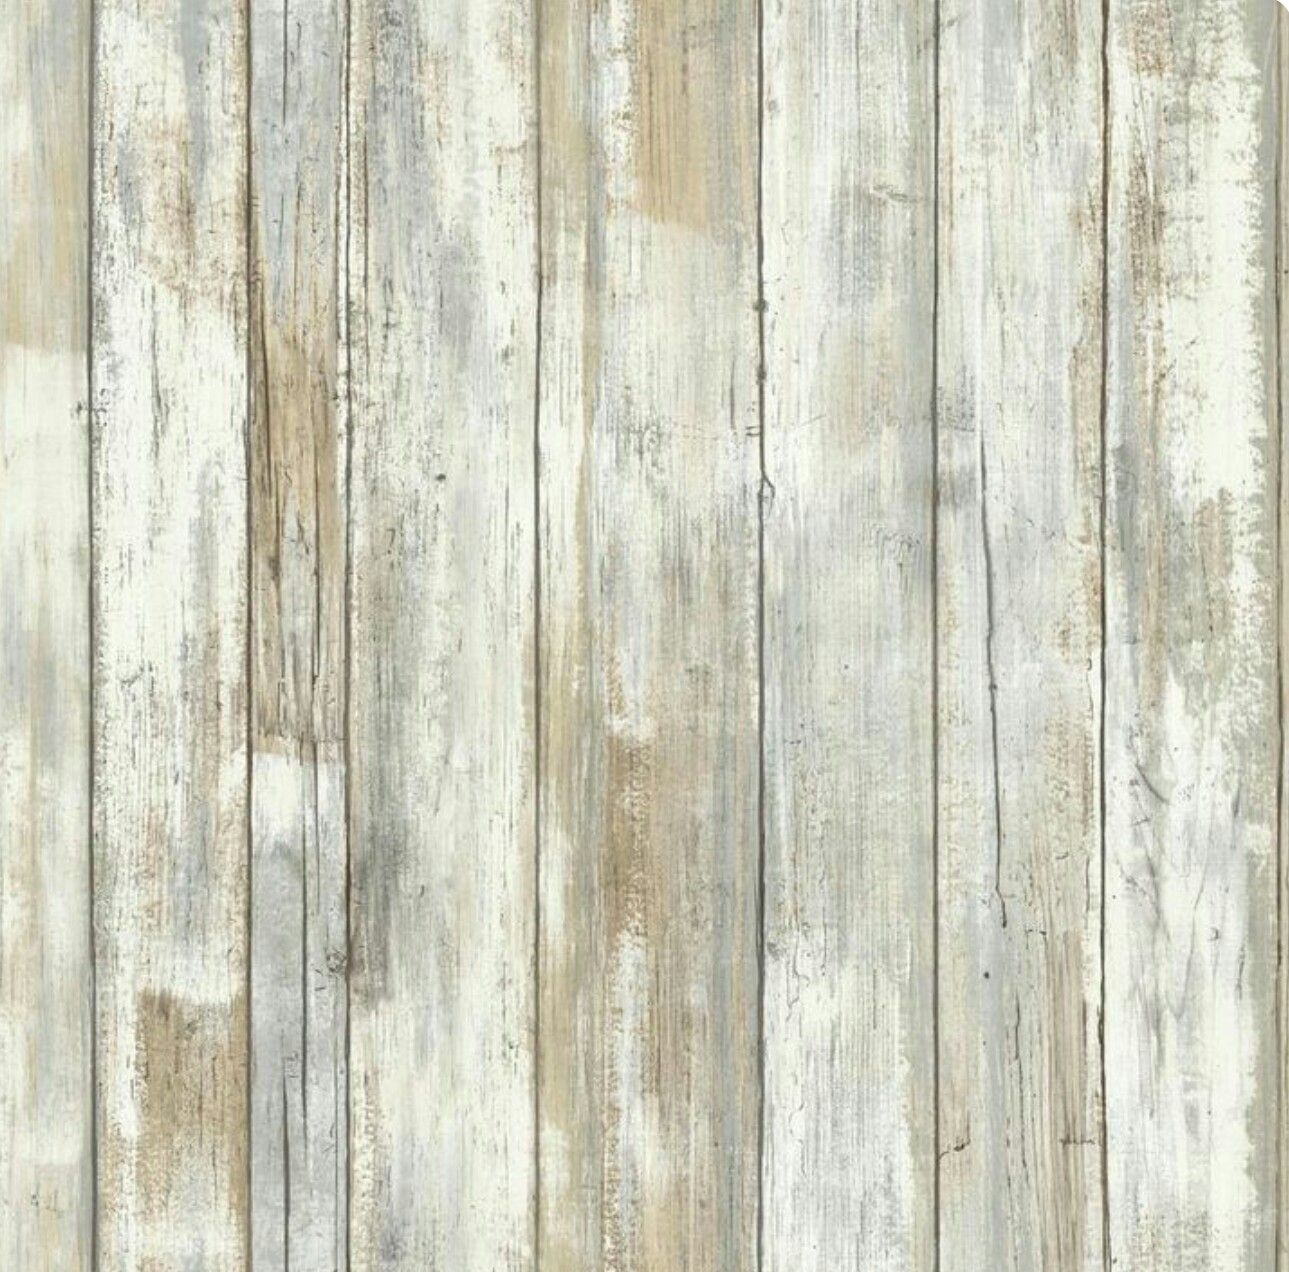 Turn Paneling Into Faux Weathered Wood By Using White Grey Tan